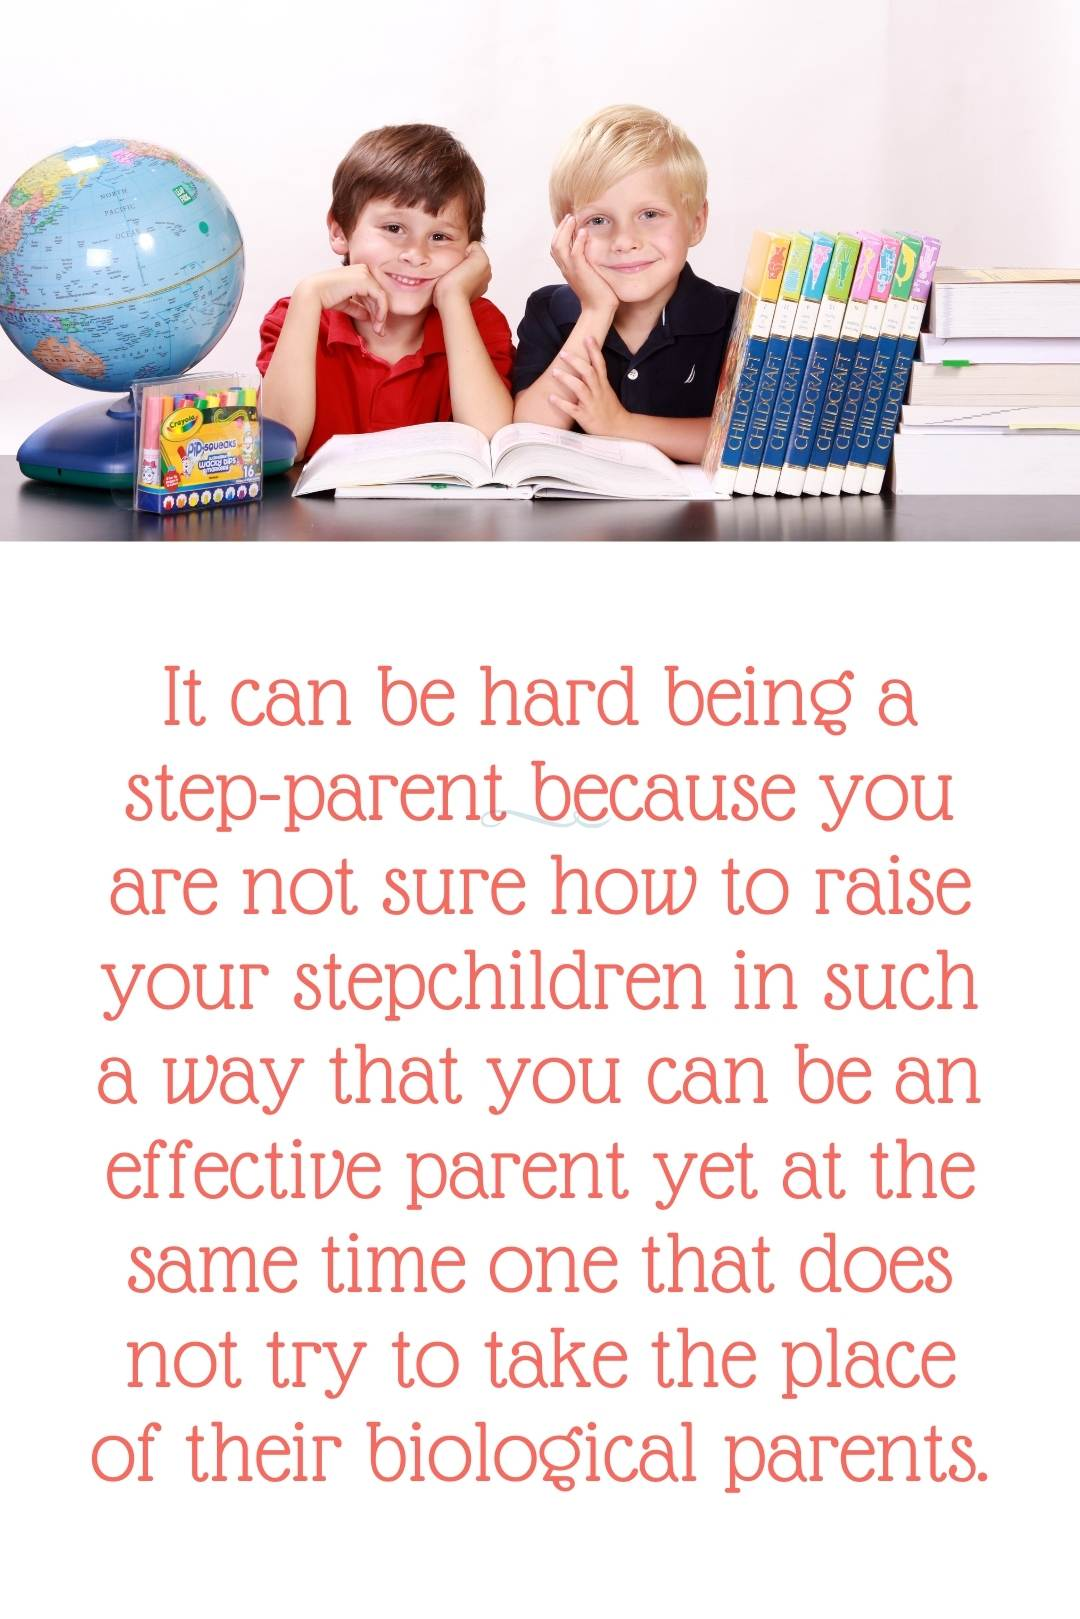 It can be hard being a step-parent because you are not sure how to raise your stepchildren in such a way that you can be an effective parent yet at the same time one that does not try to take the place of their biological parents.